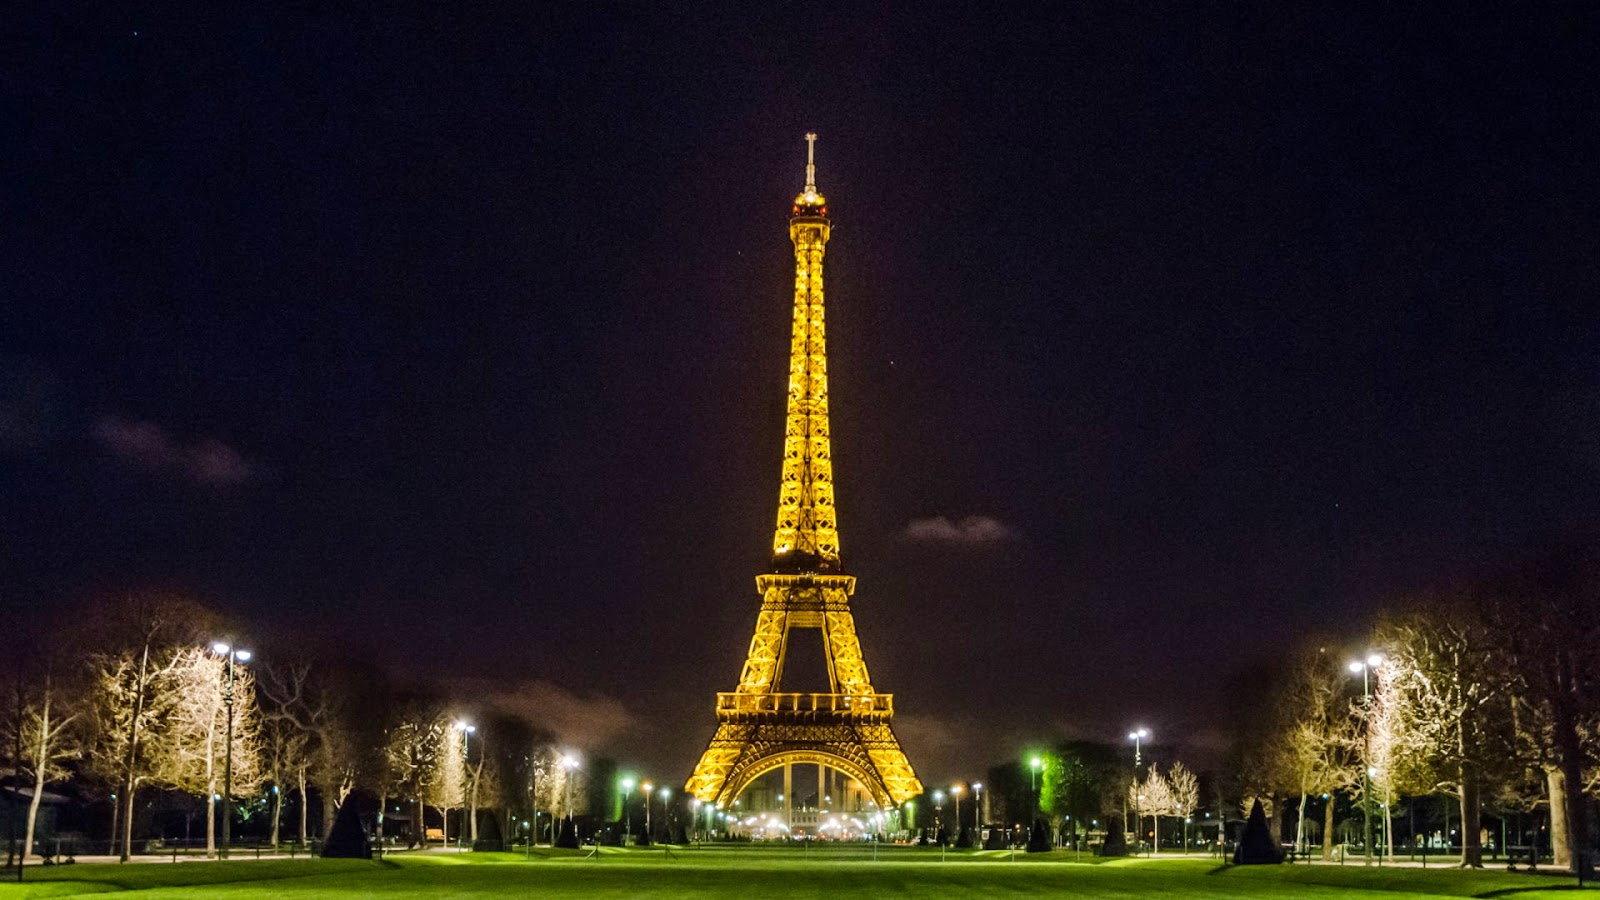 Eiffel Tower Night Desktop Backgrounds - Eiffel Tower ...